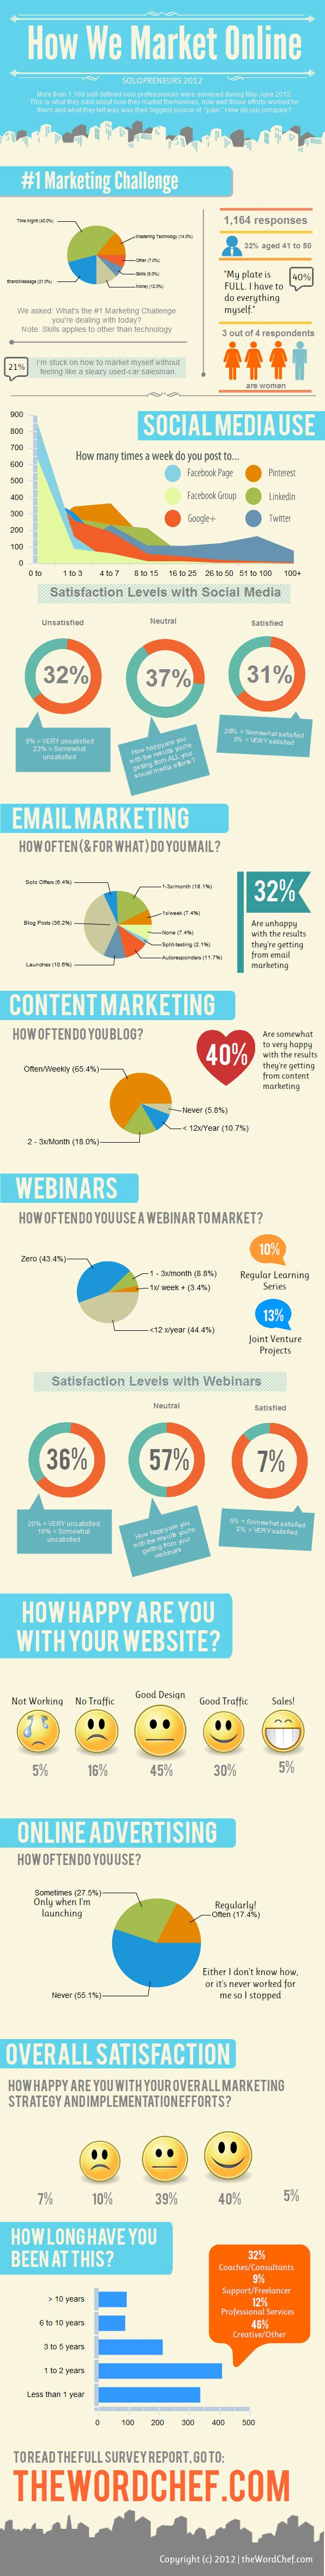 Based on data gathered during June 2012 by Word Chef Enterprises. Full research study available soon.